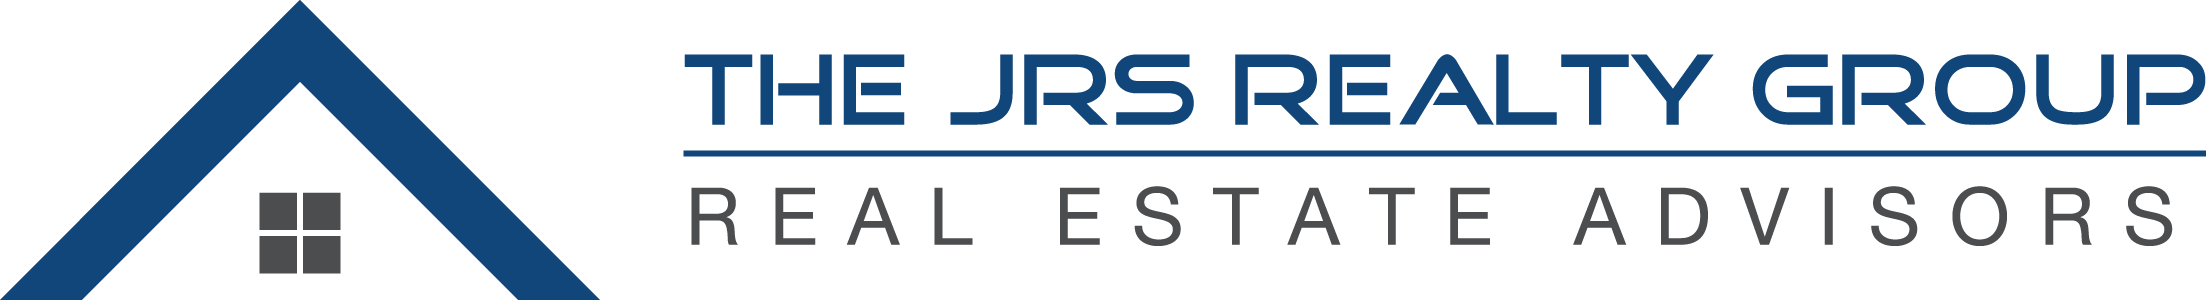 The JRS Realty Group logo